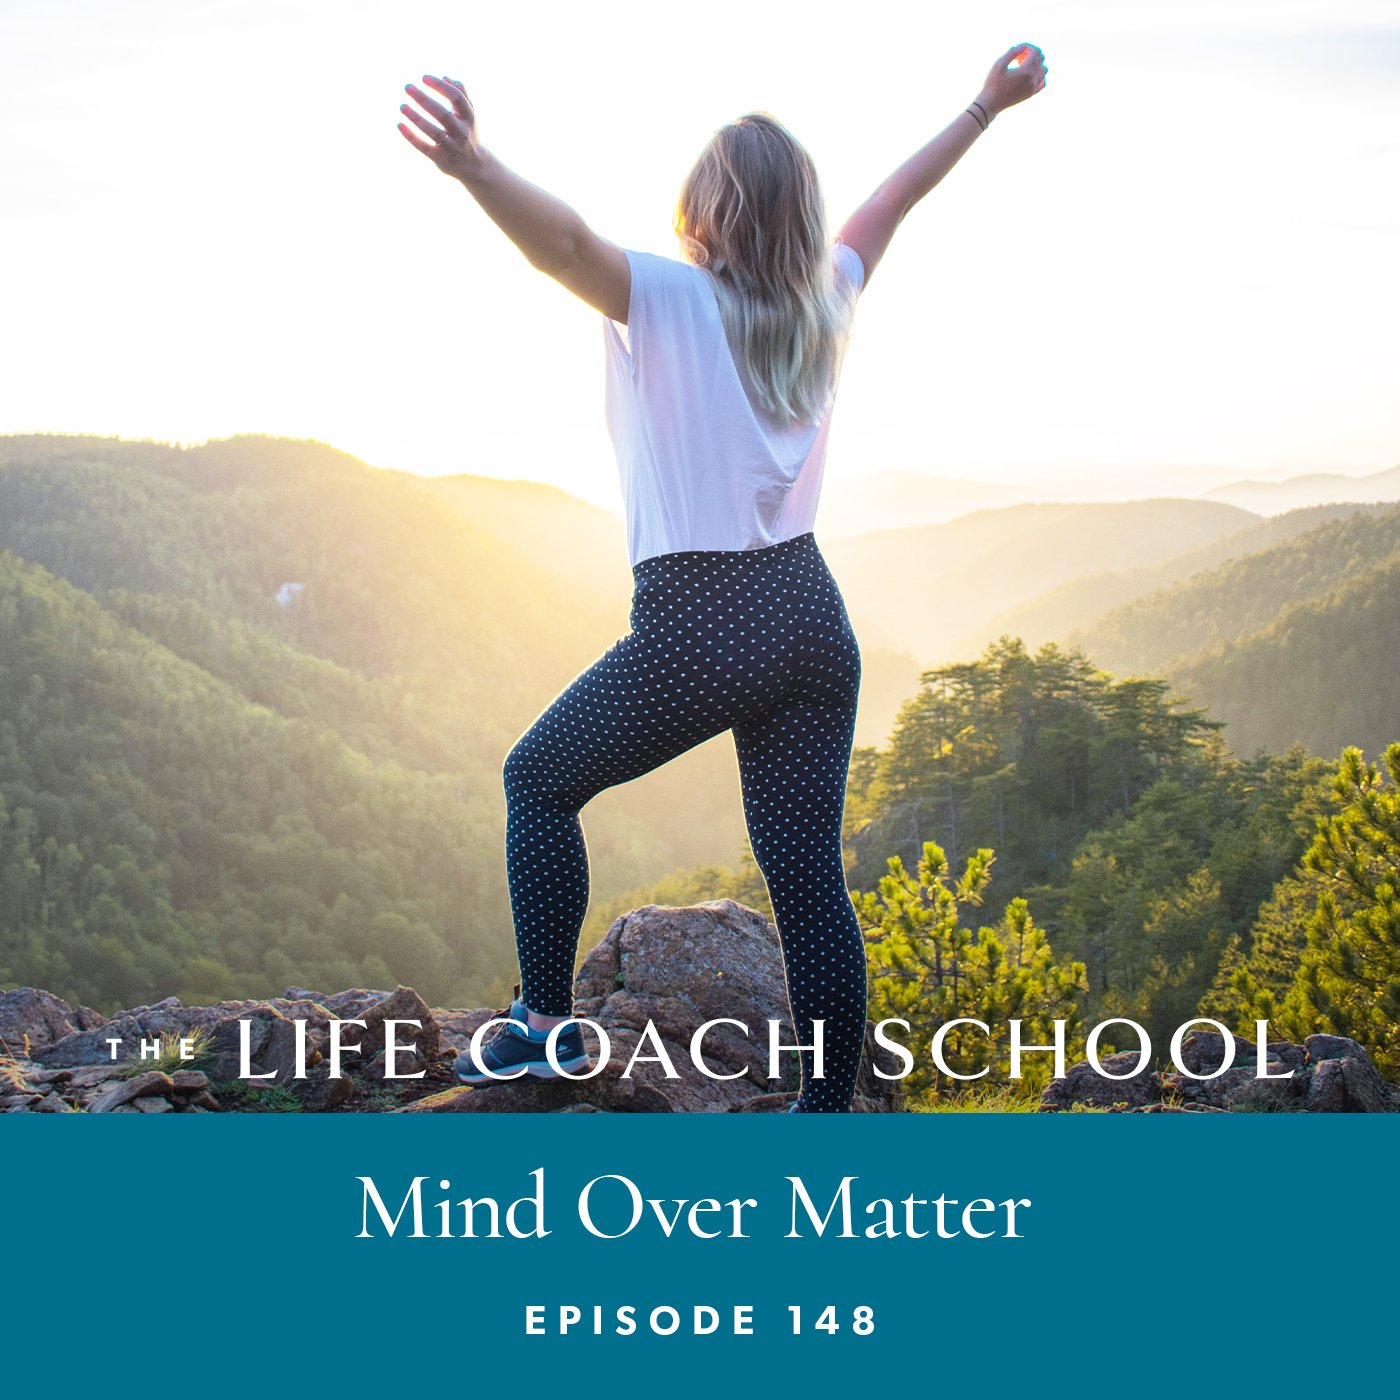 The Life Coach School Podcast with Brooke Castillo | Episode 148 | Mind Over Matter